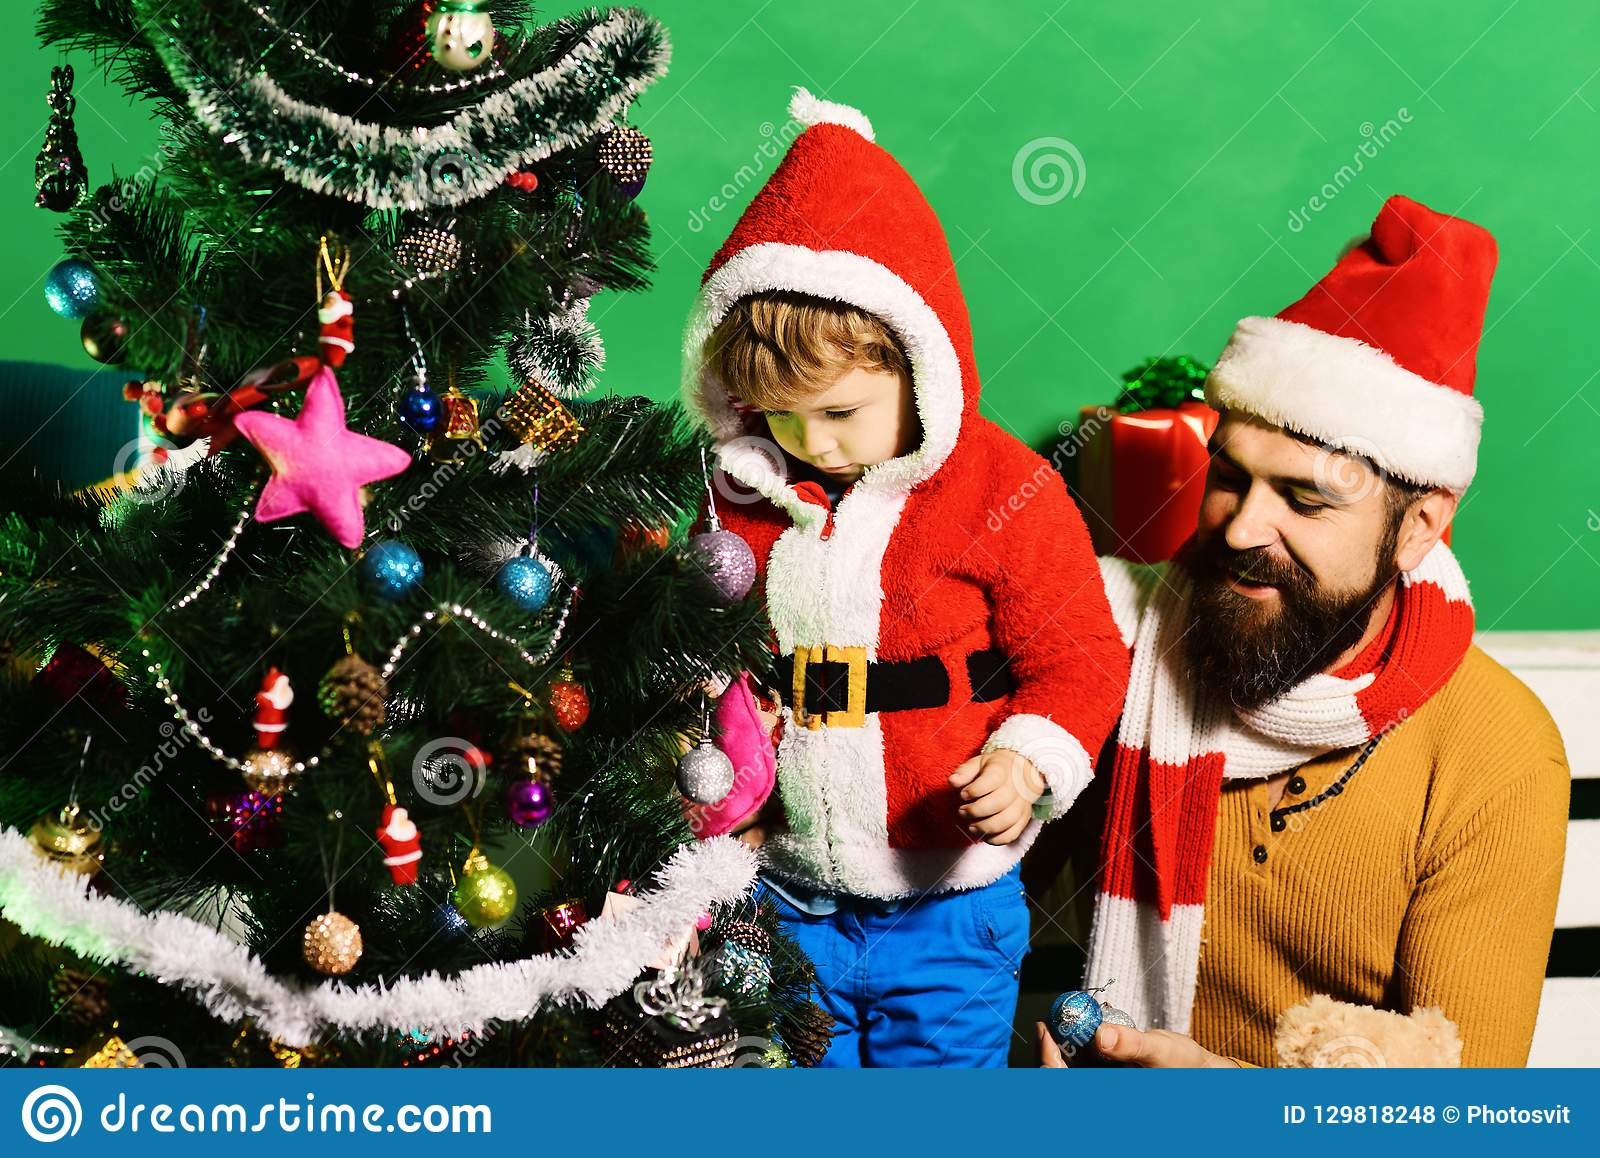 Family holidays concept. Boy and man with beard